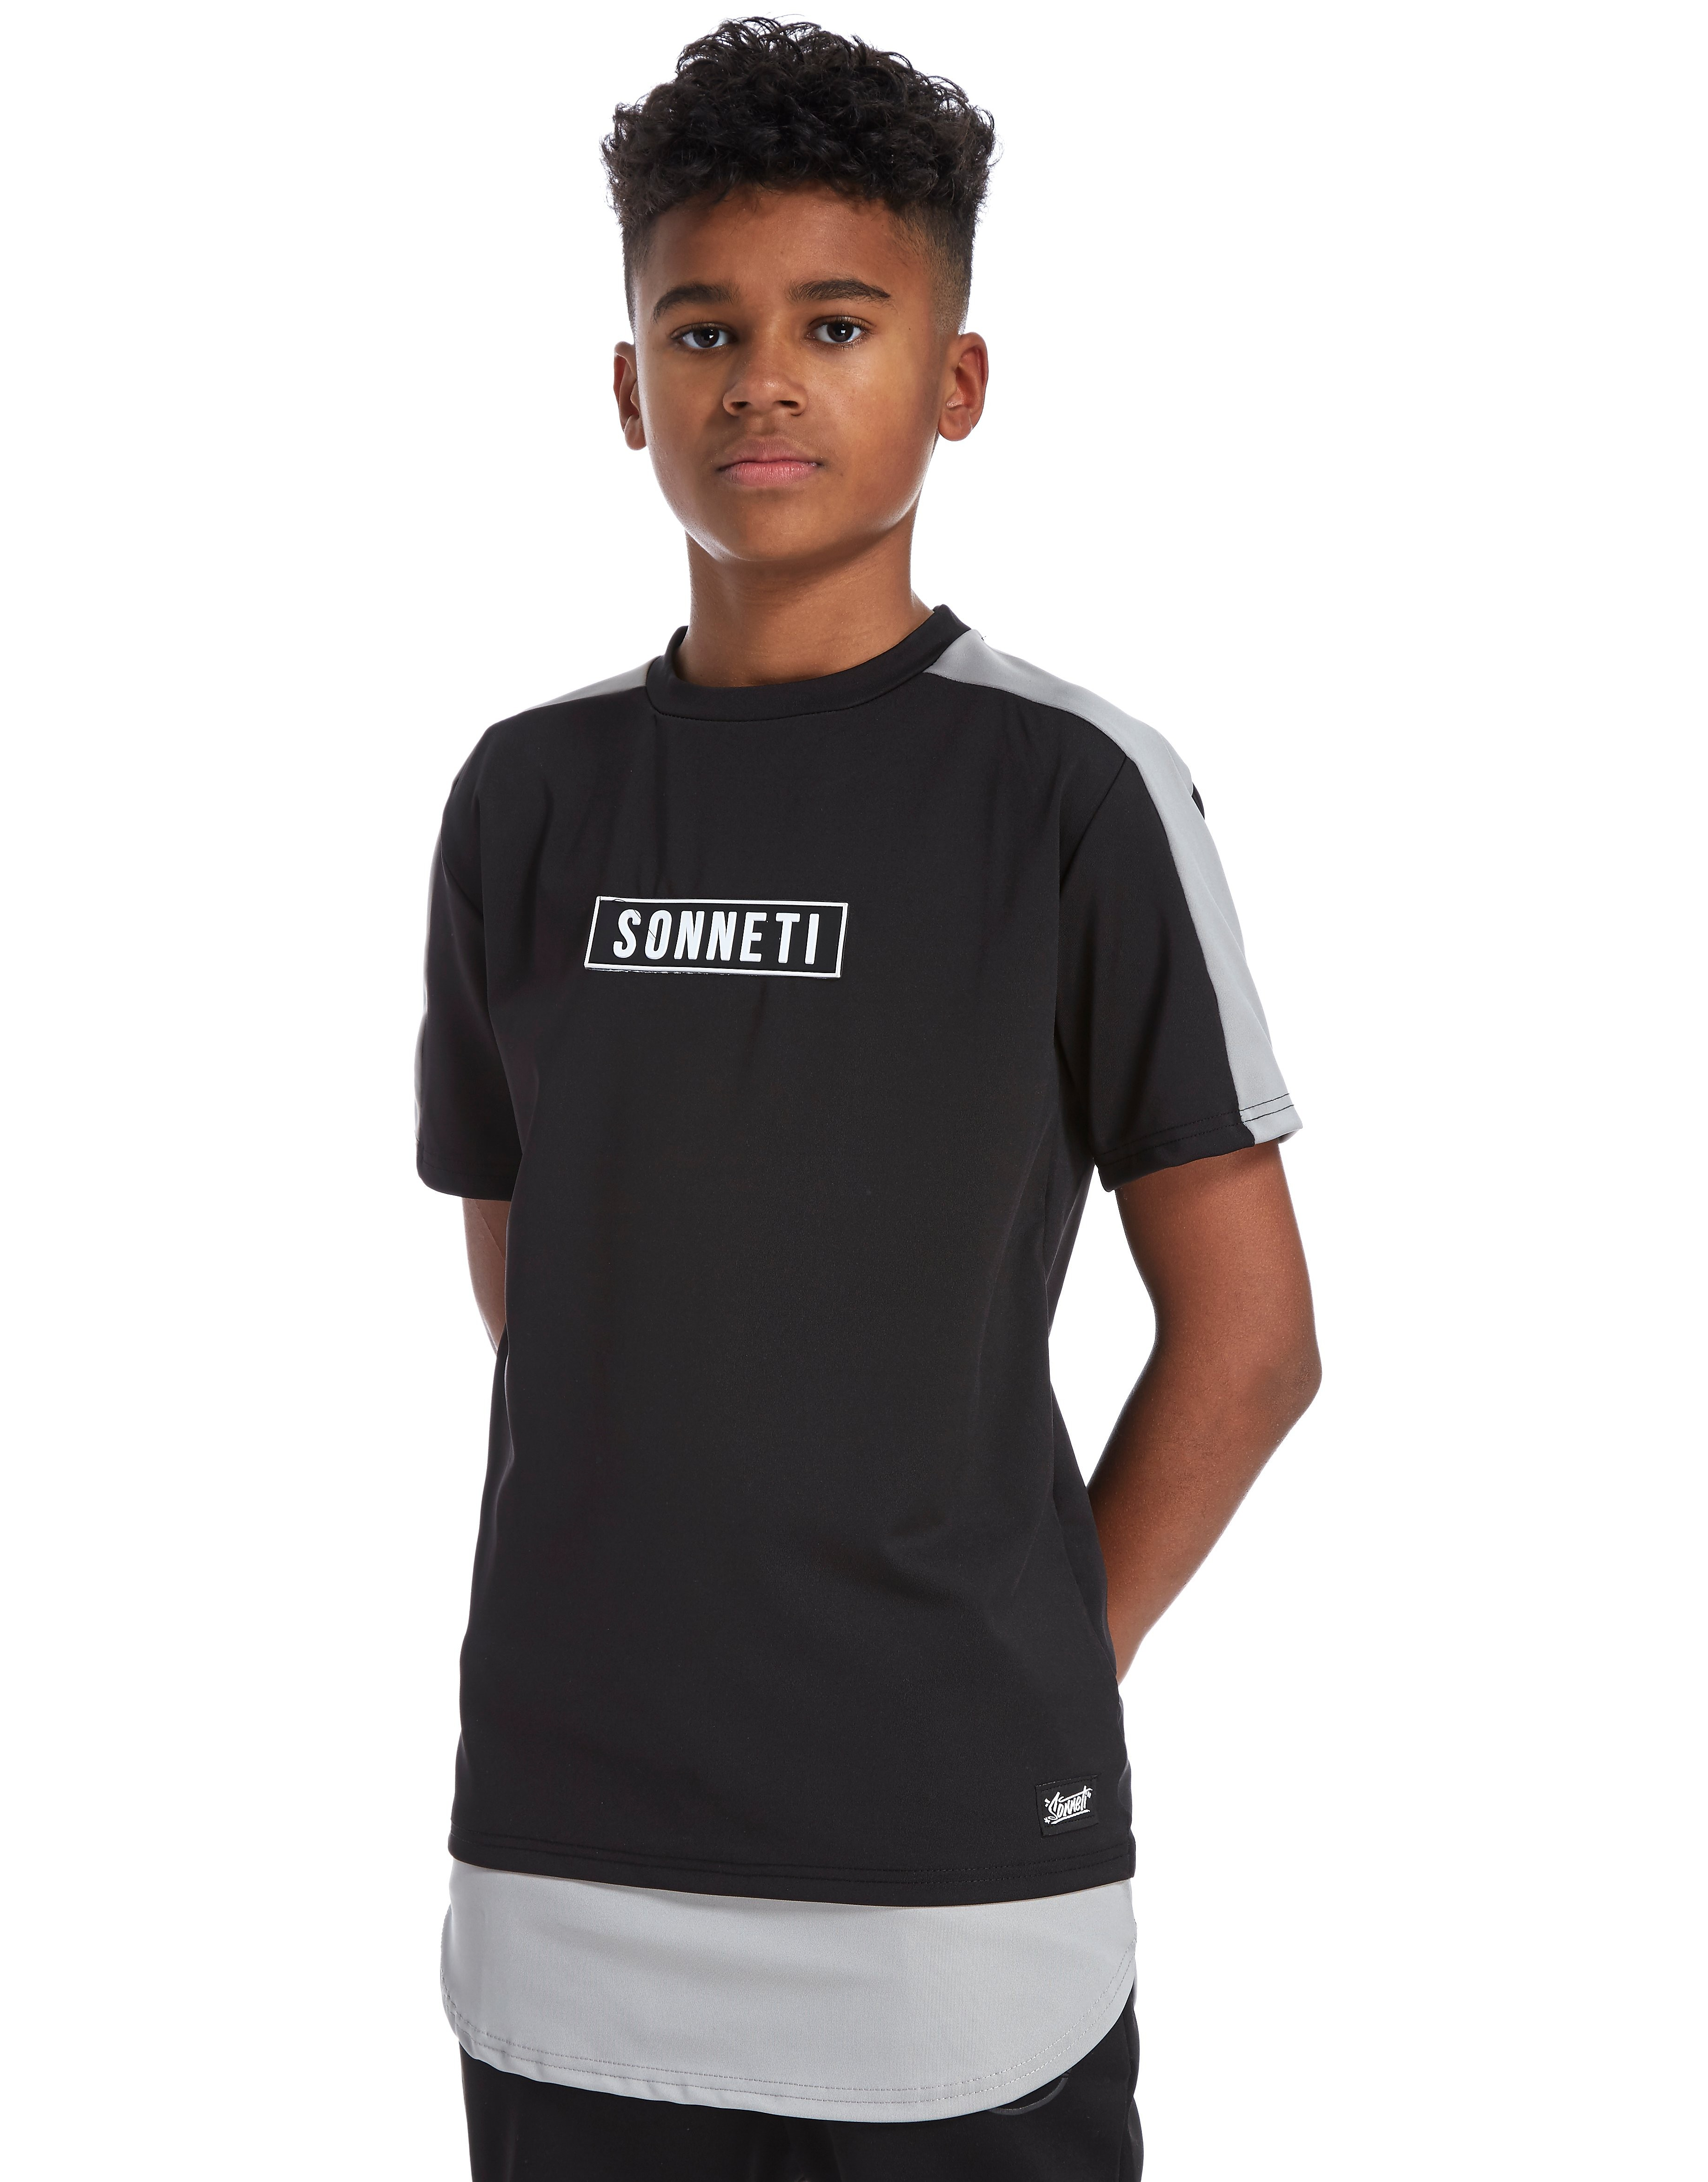 Sonneti Adapt T-Shirt Junior